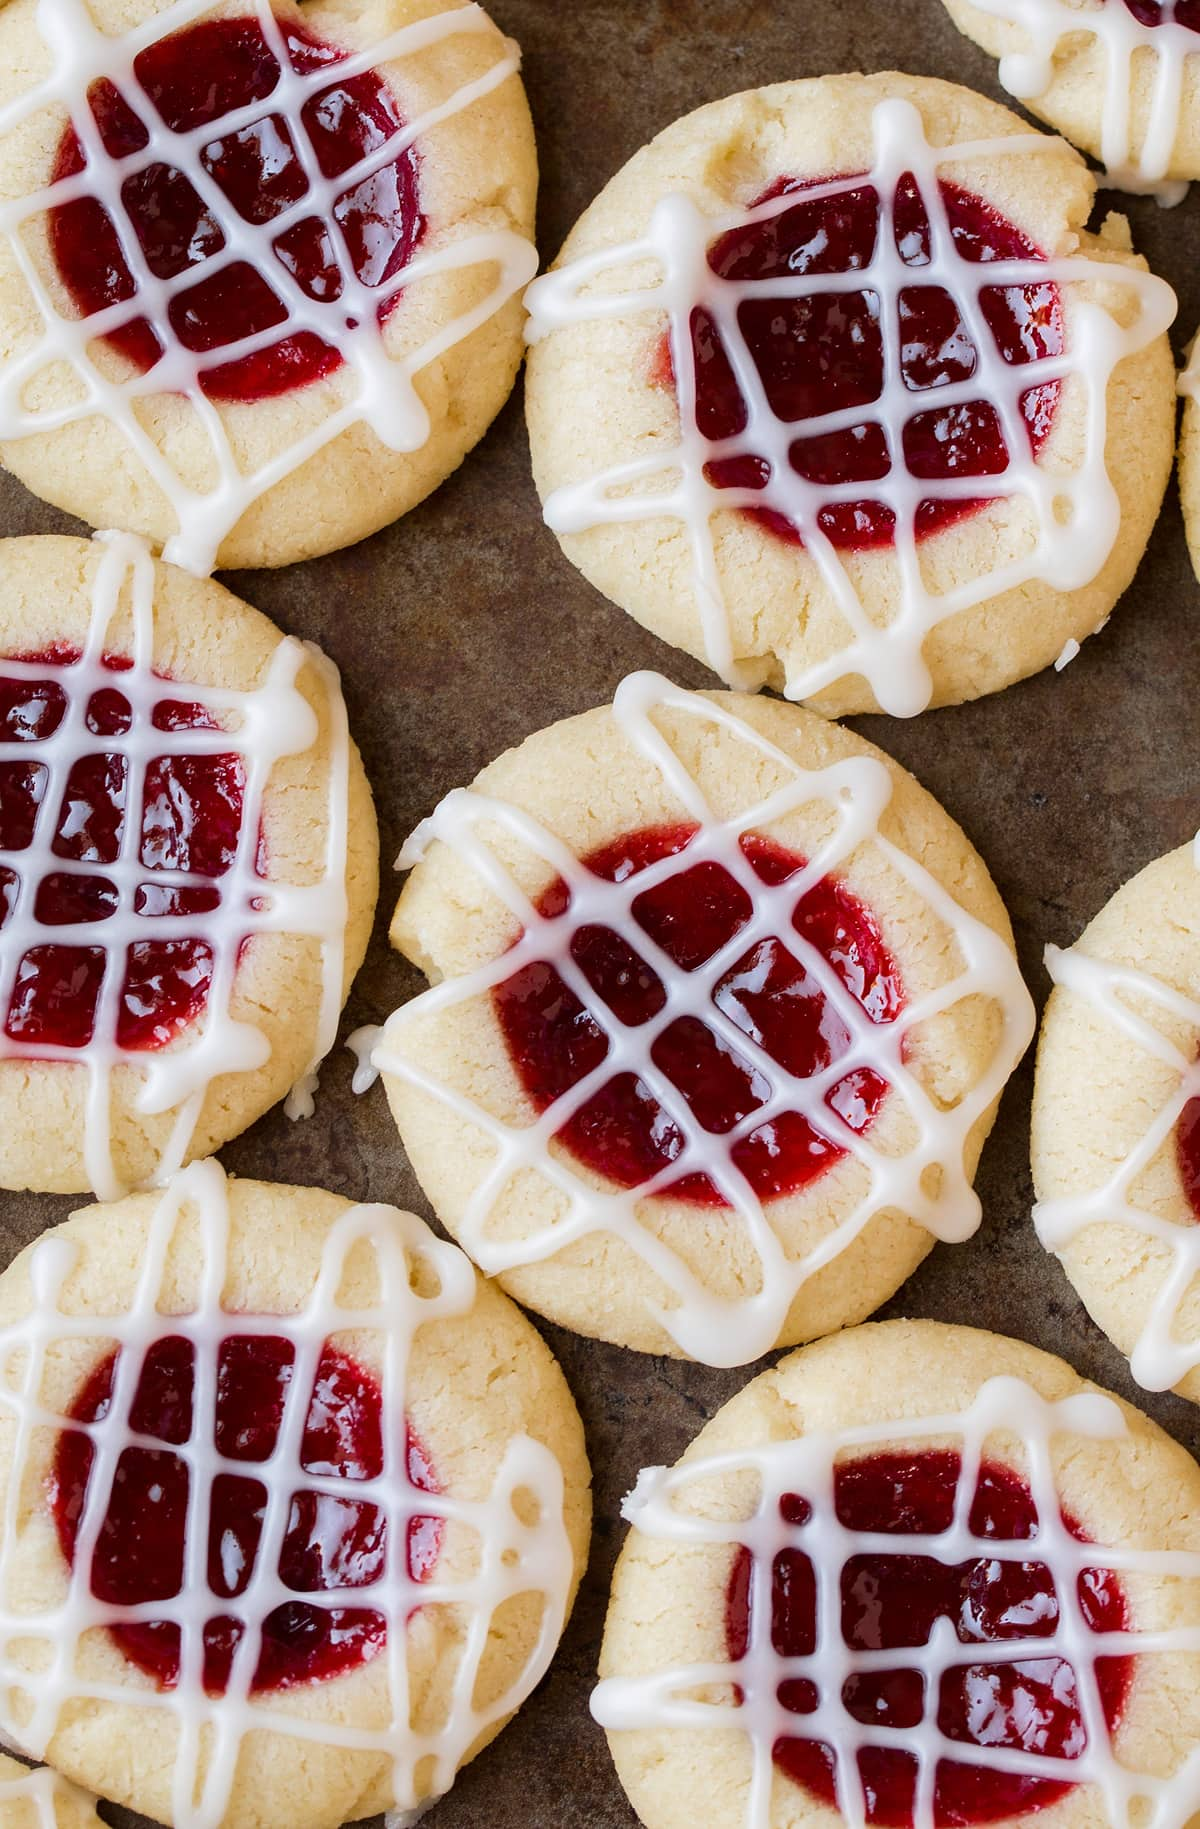 Thumbprint cookies close up image. Cookies are made with a shortbread cookie base and filled with a round of raspberry jam and drizzled with a criss cross pattern of almond glaze.